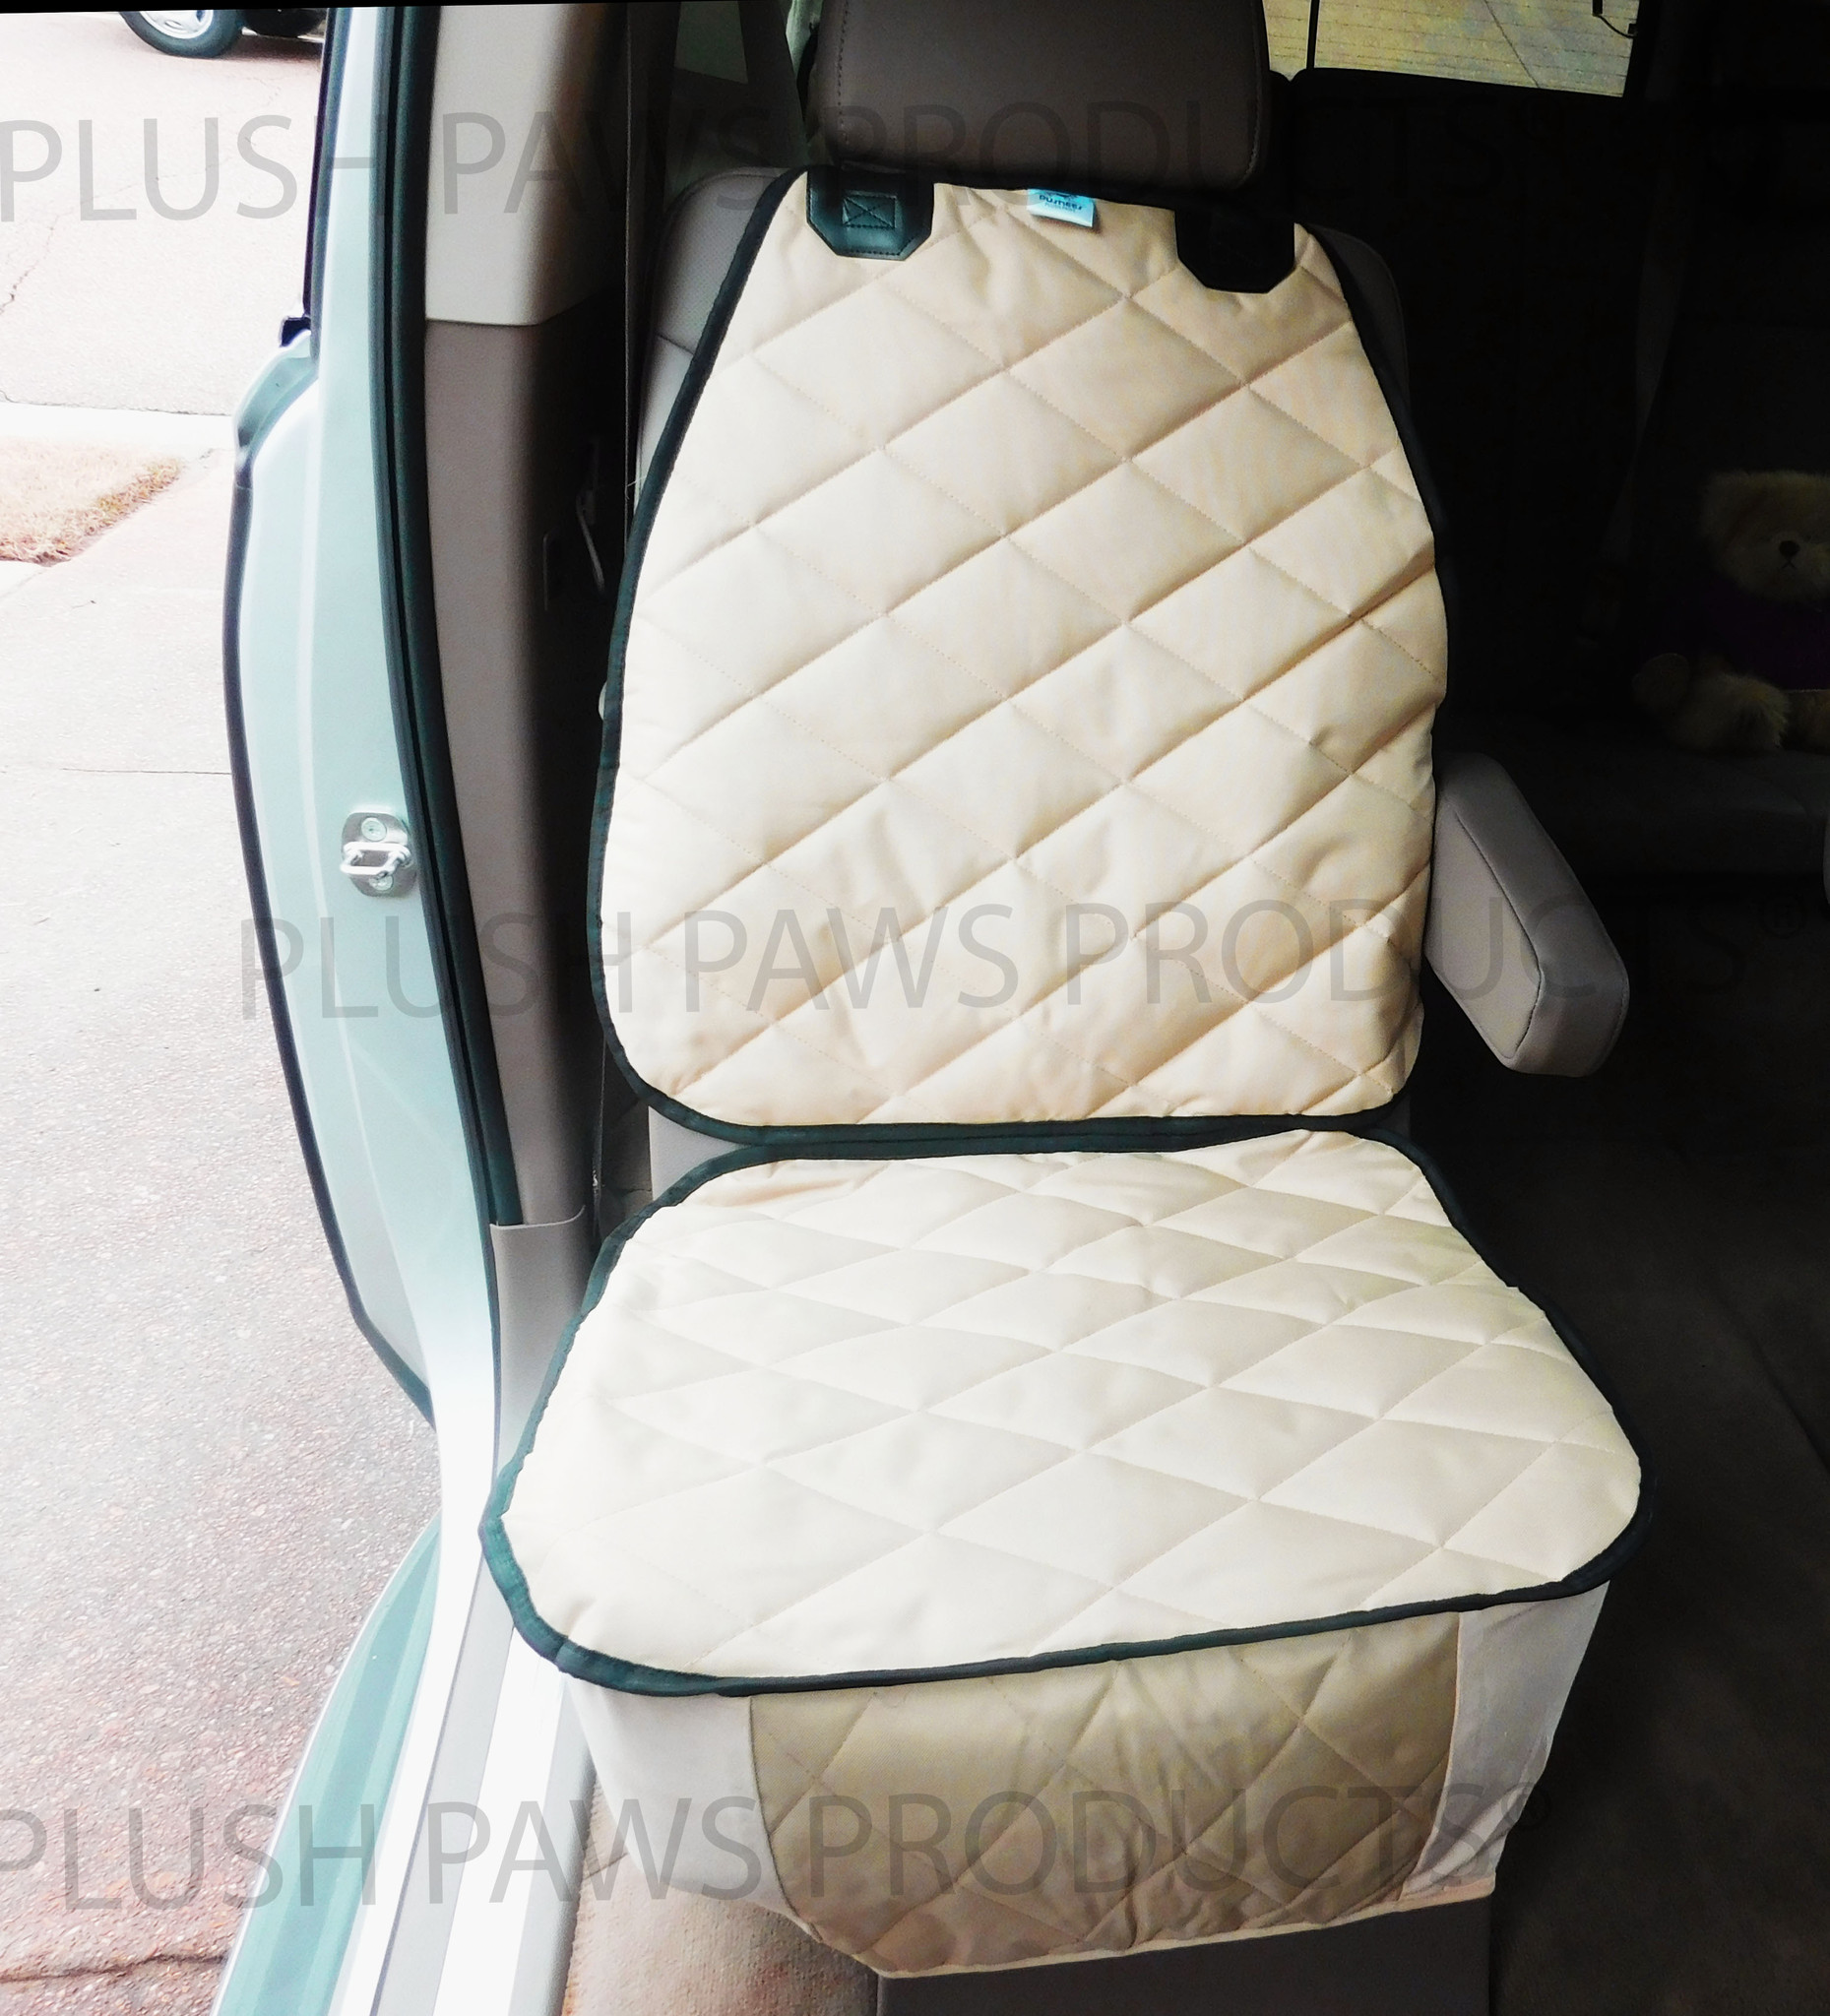 Plush Paws Products Co-Pilot Bucket Car Seat Cover - Tan